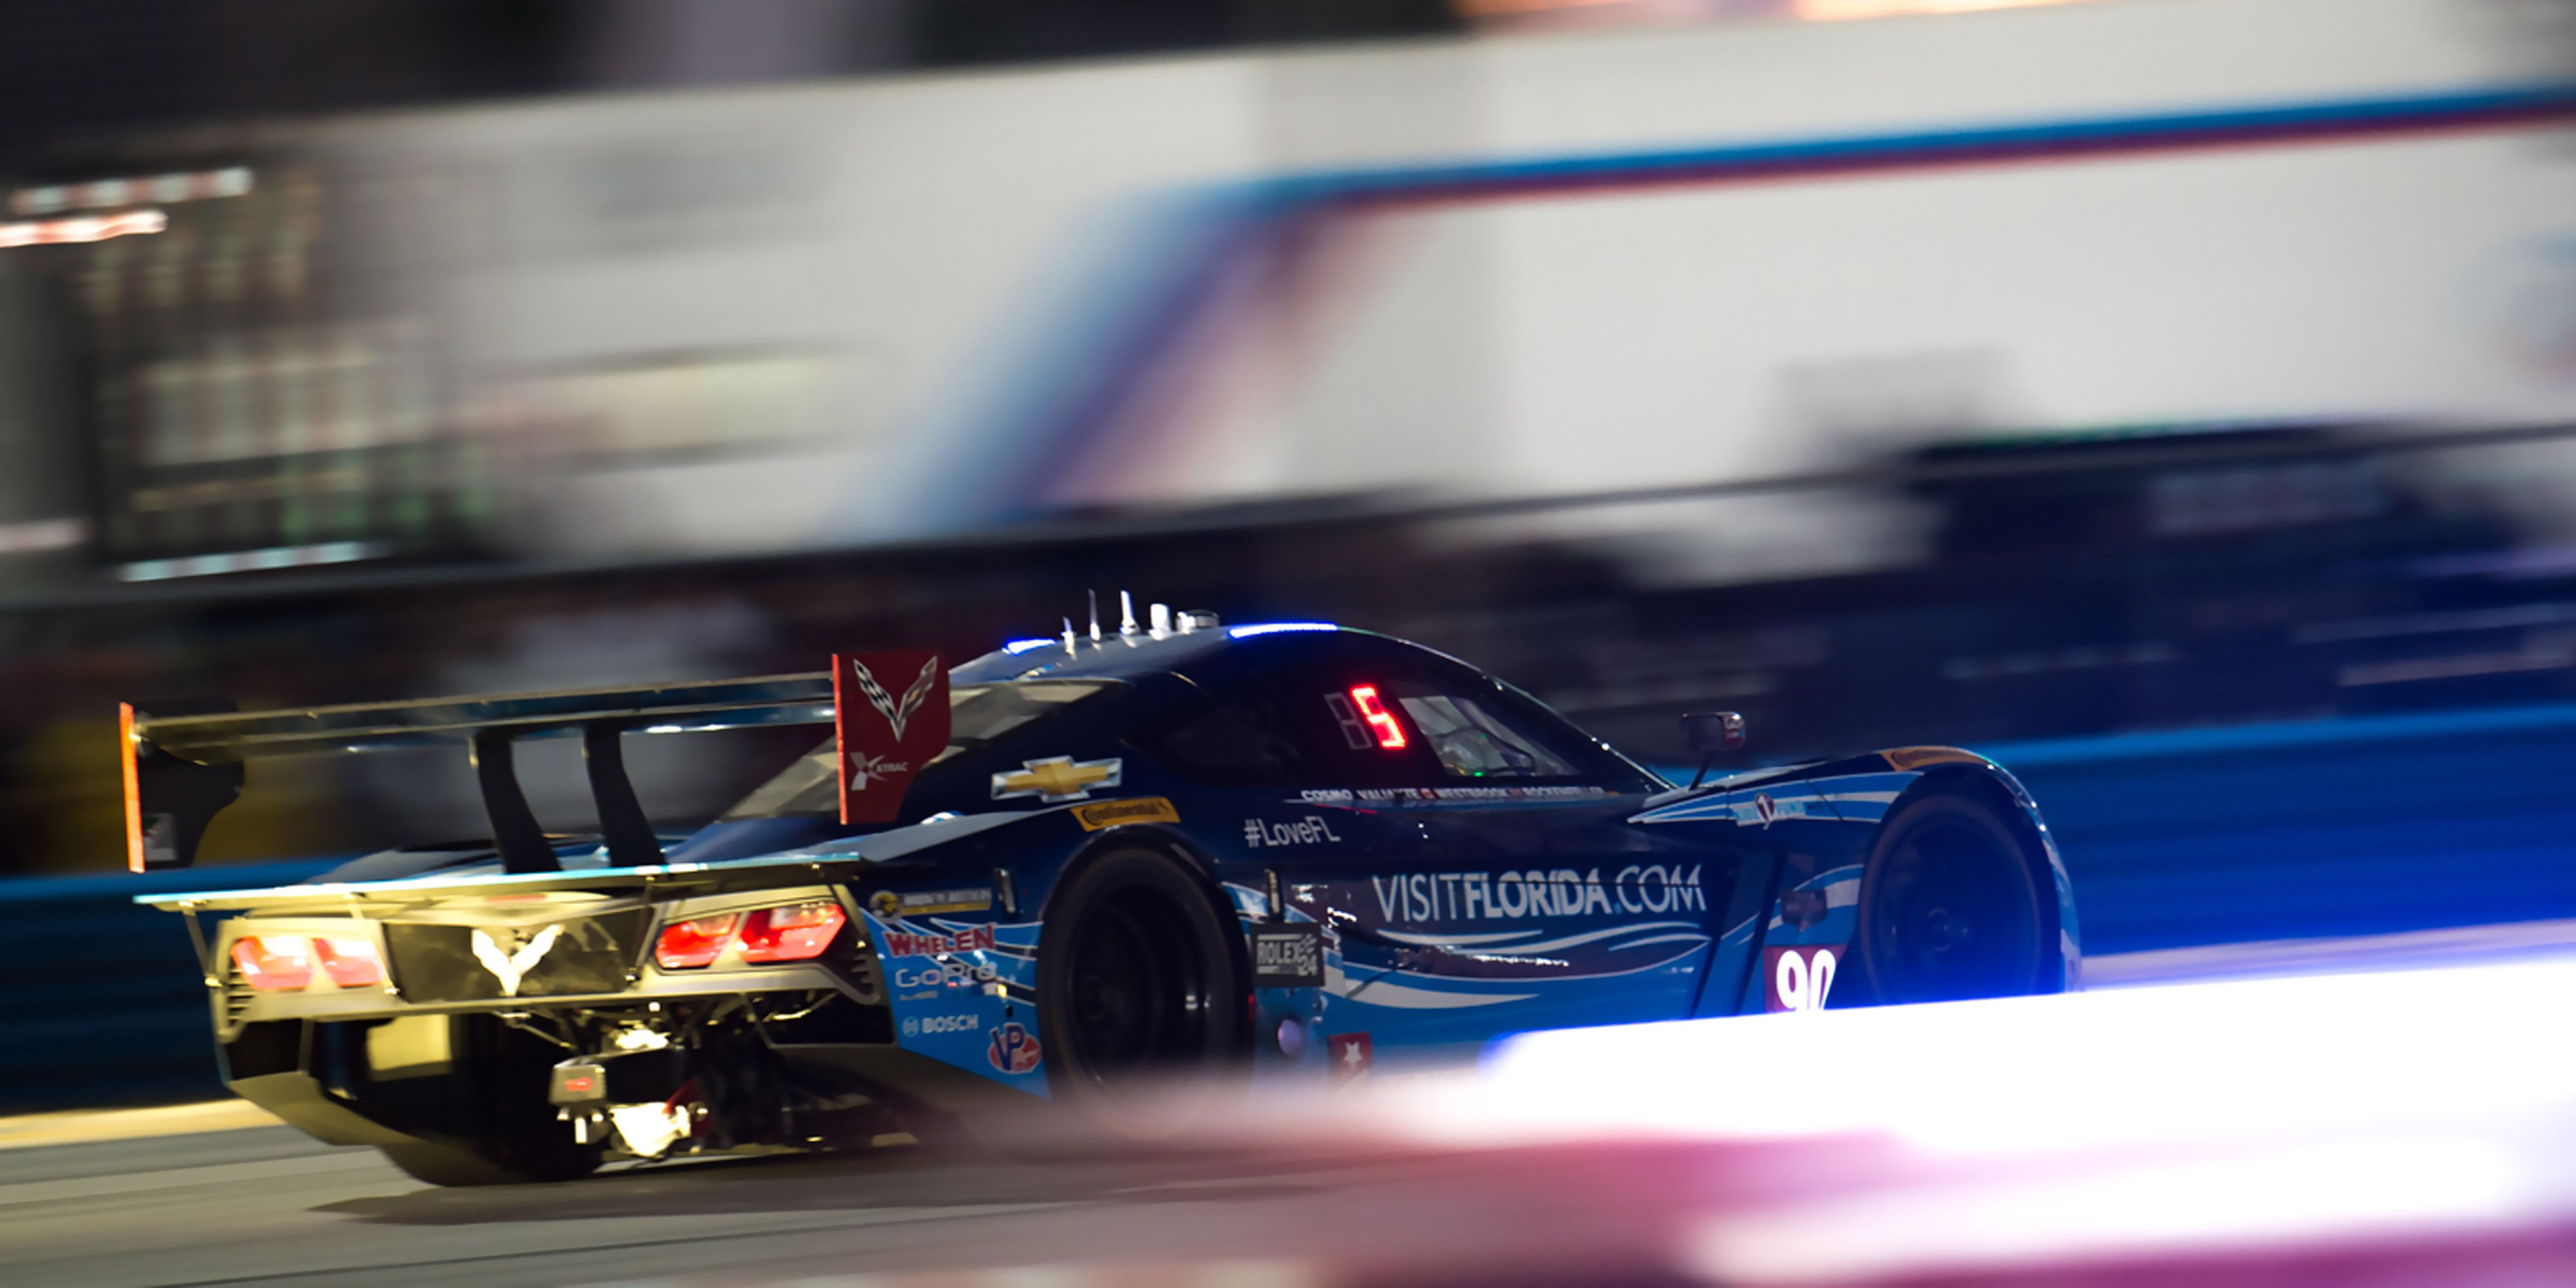 How To Photograph Race Cars In The Dark